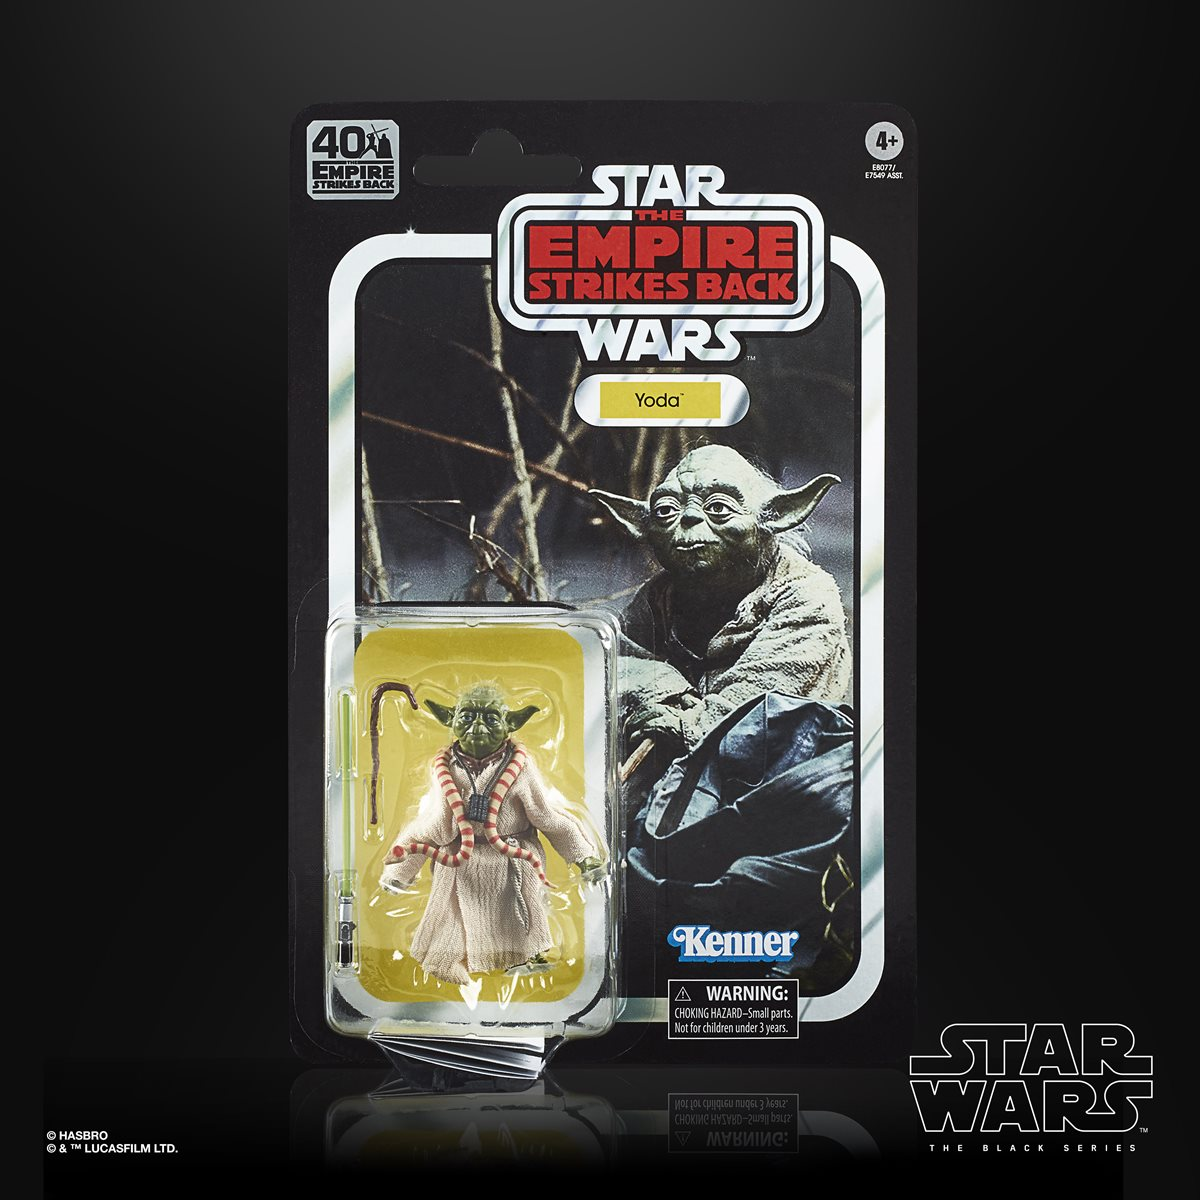 Star Wars The Black Series Empire Strikes Back 40th Anniversary 6 Inch Yoda Action Figure Entertainment Earth